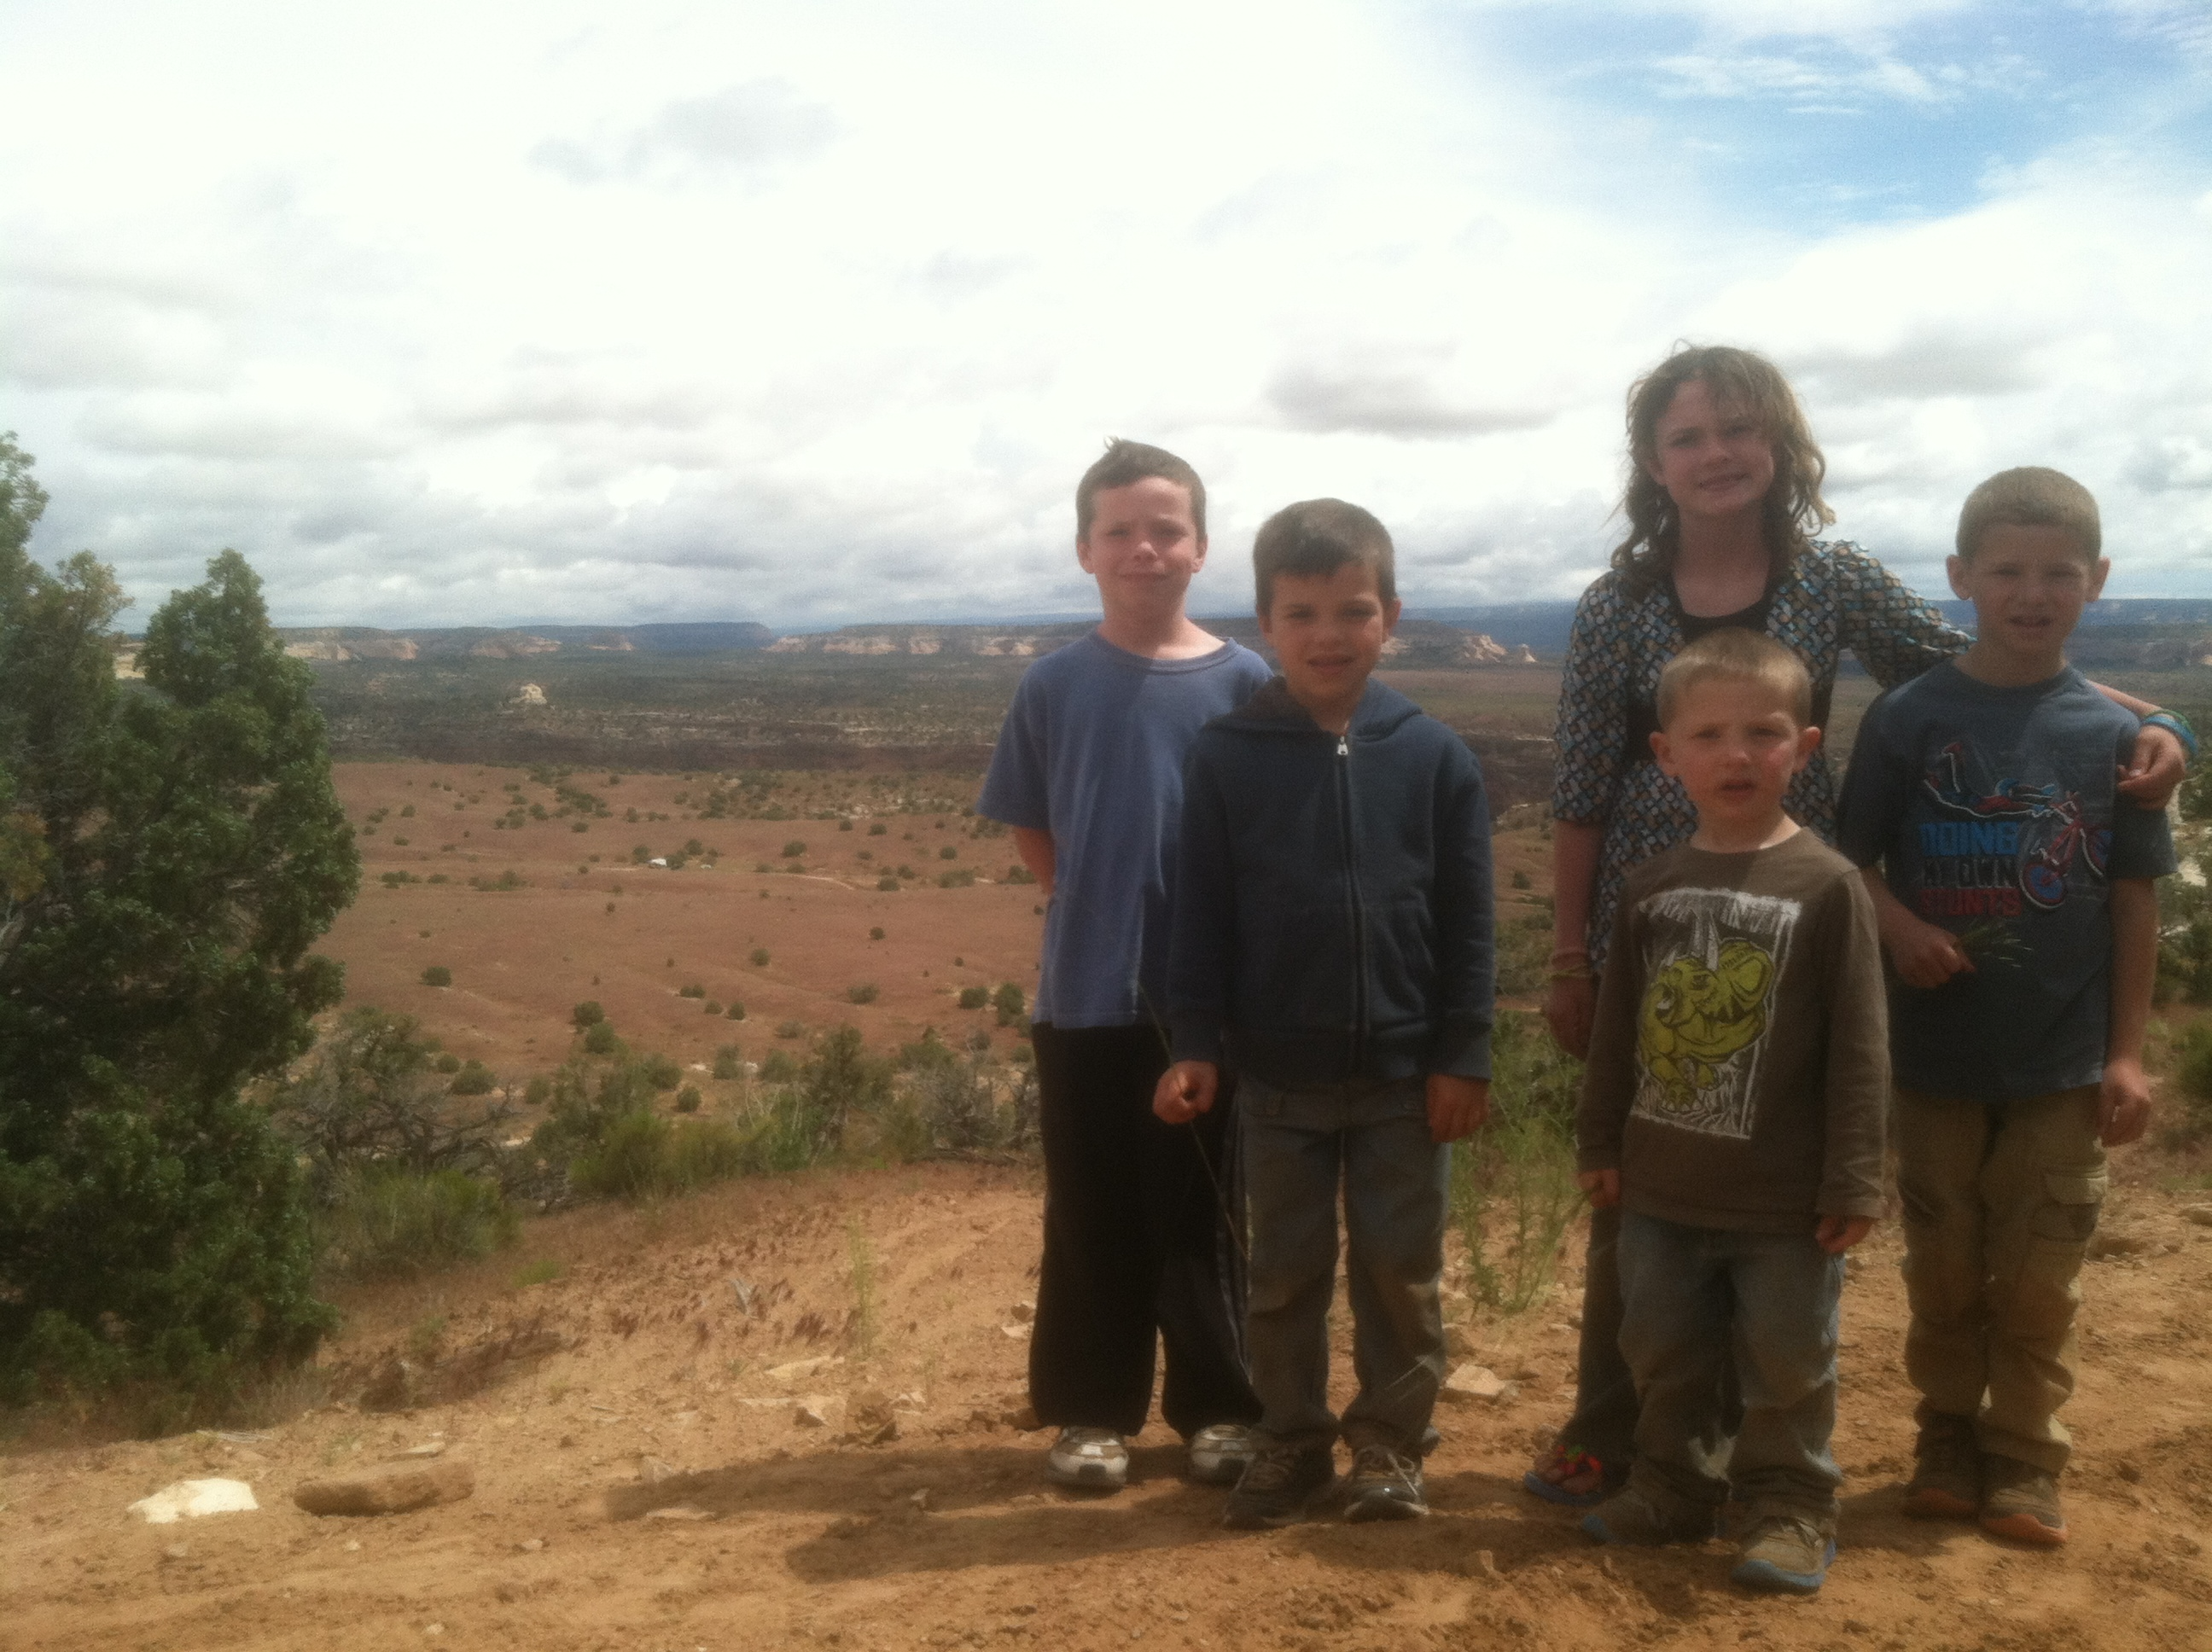 5 Kids 1 Jeep and a Beautiful Day